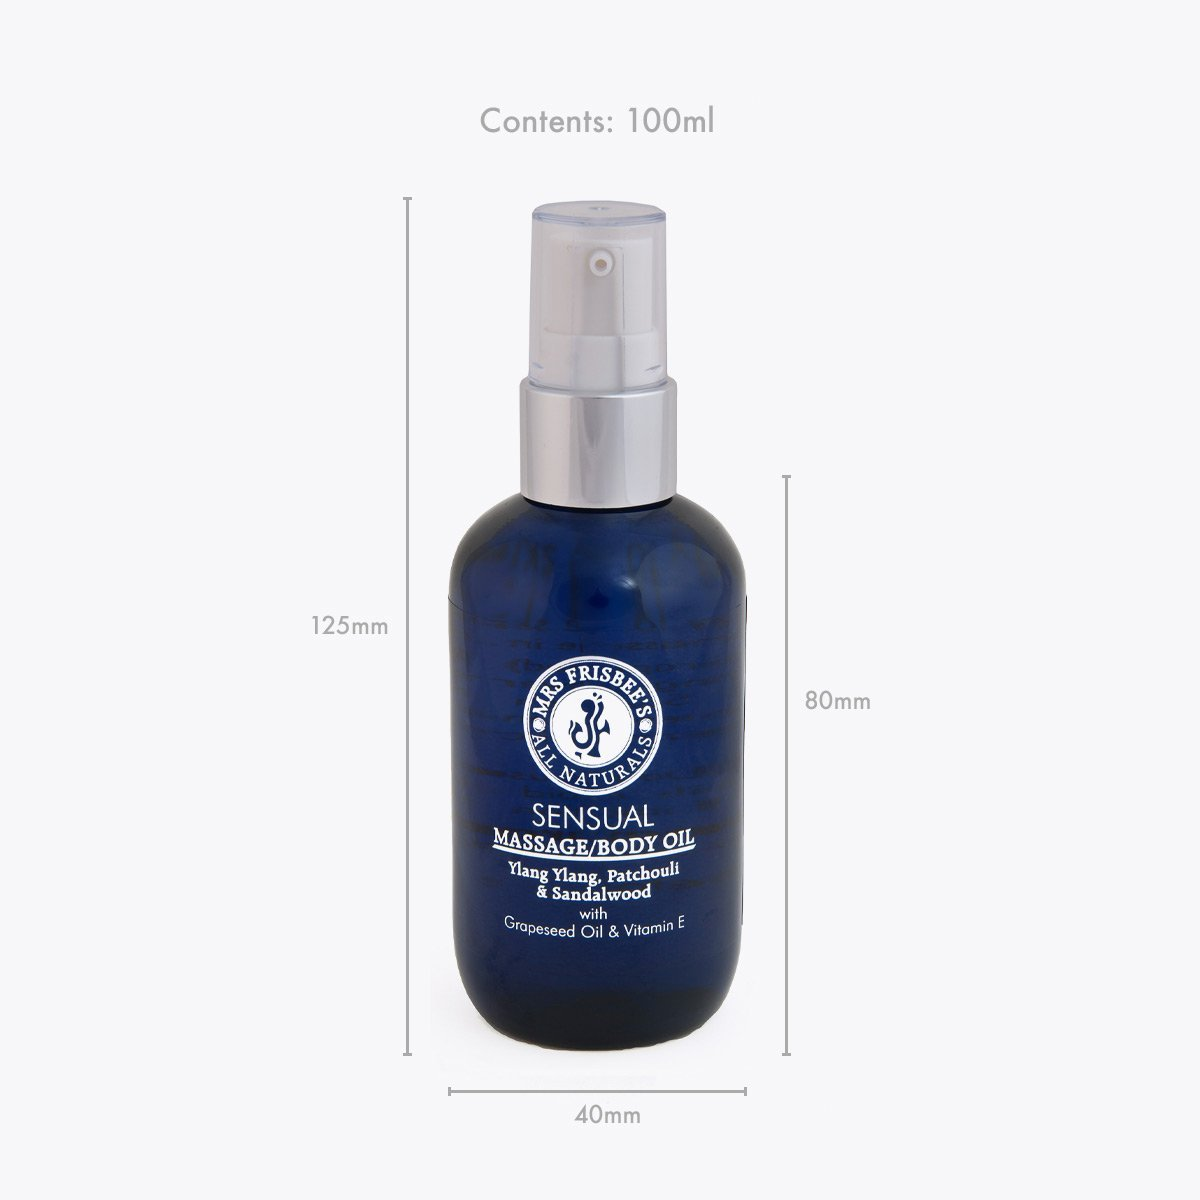 Sensual Massage Oil bottle measurements